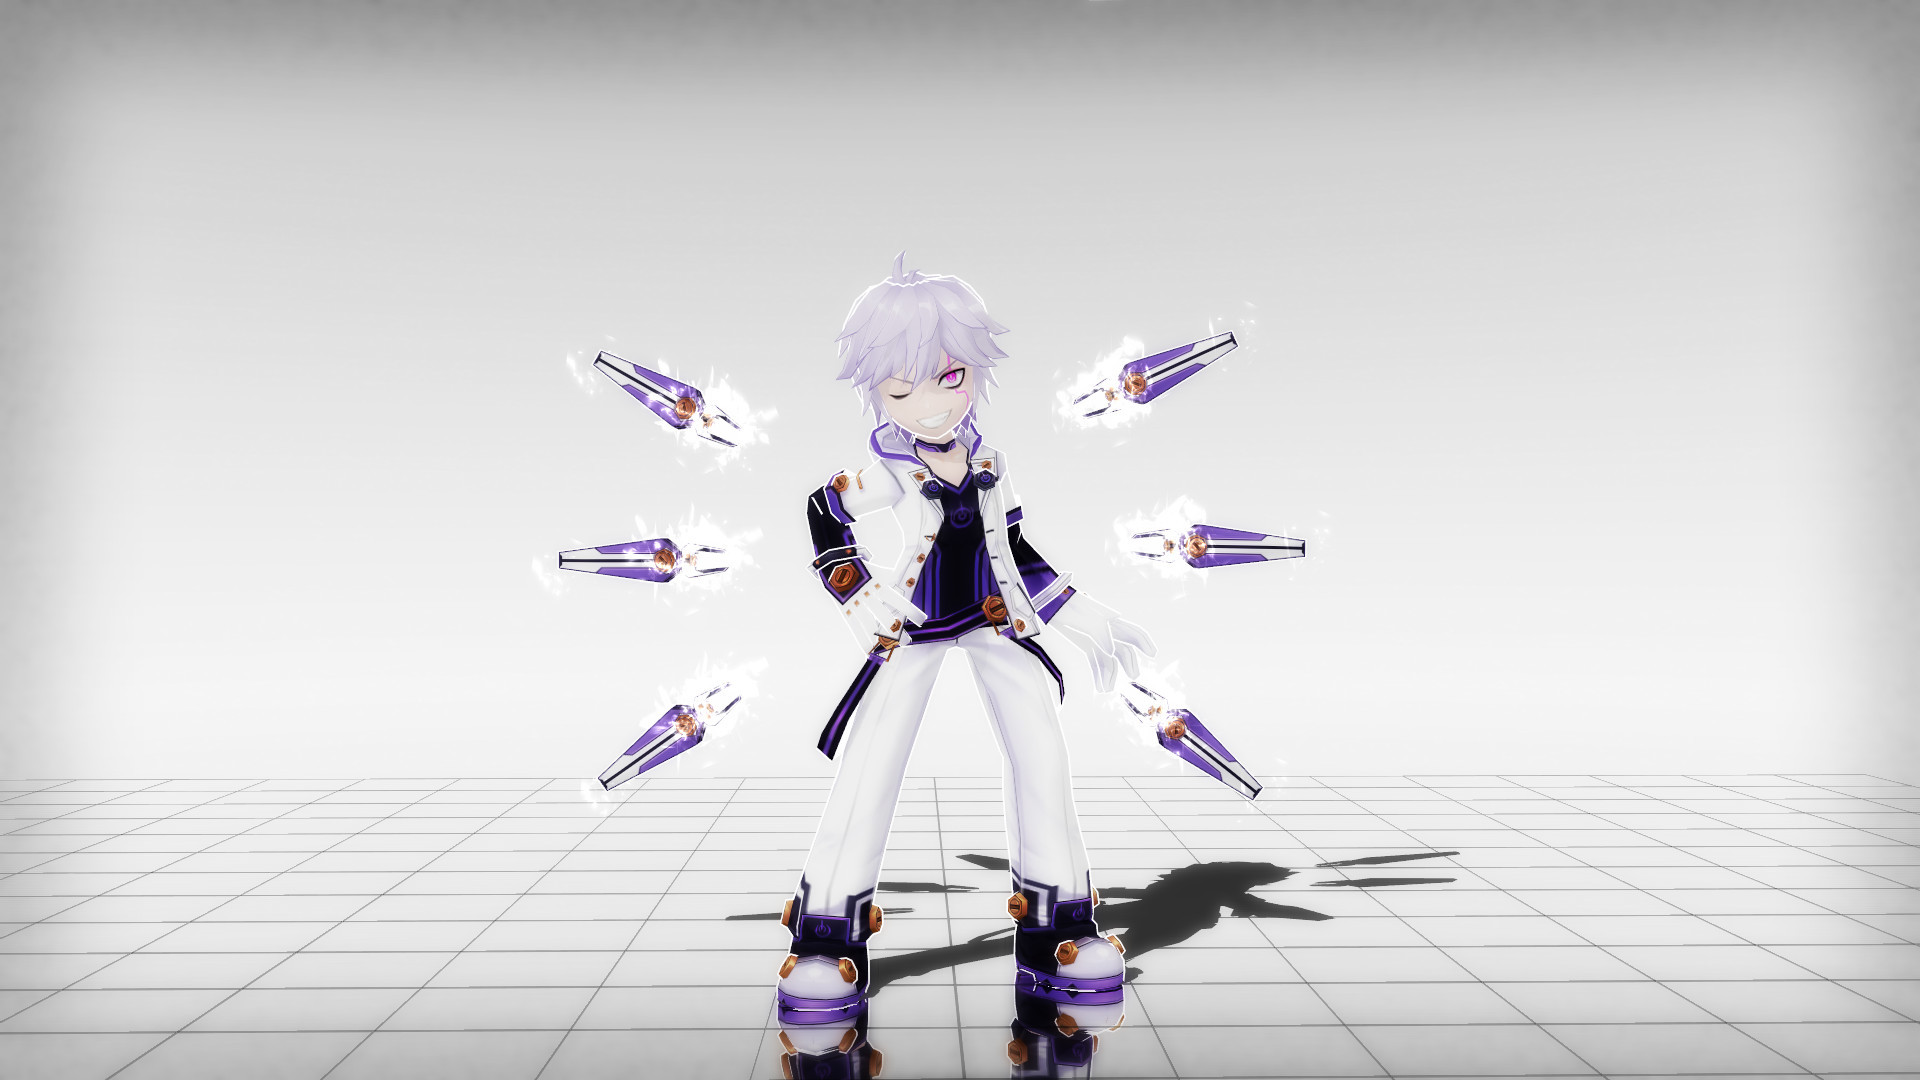 1920x1080 ... Elsword: Add Base Wallpaper by DiabolicTurkey